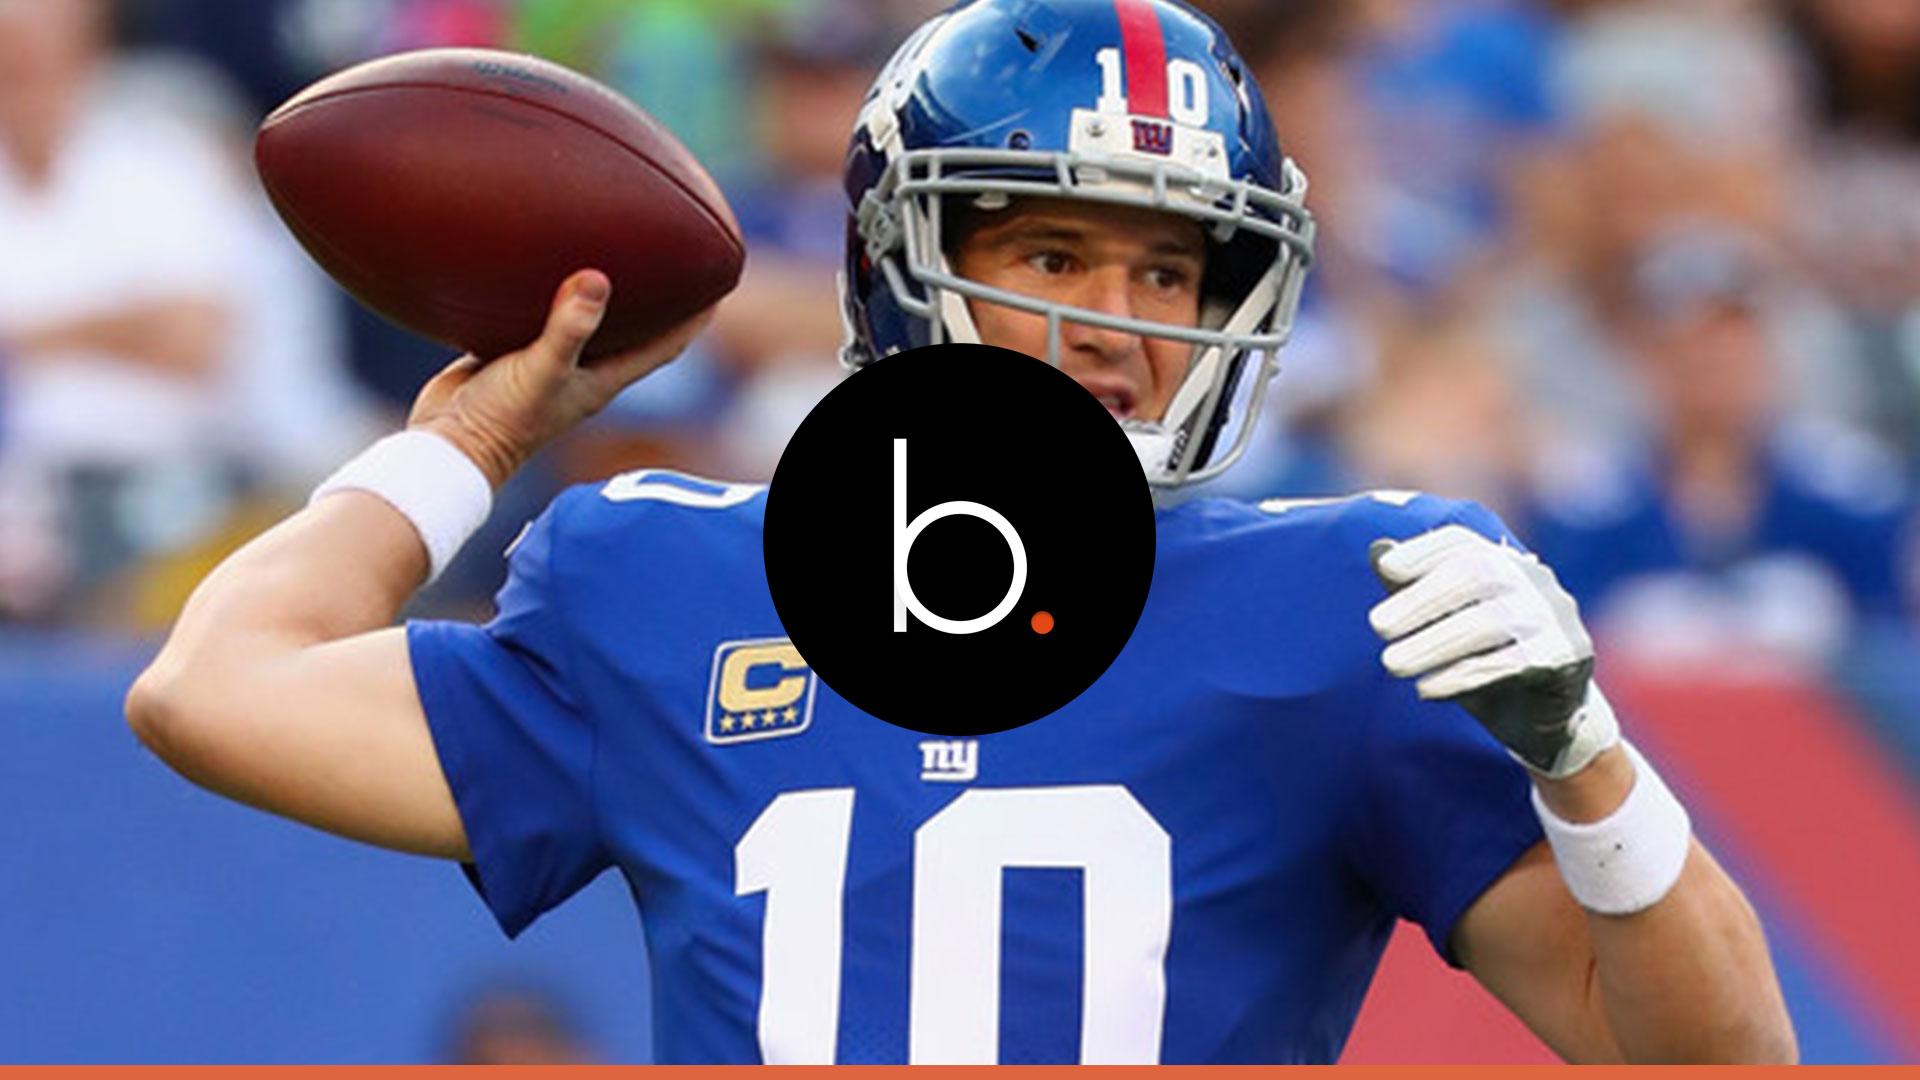 Time for the New York Giants to make permanent long-term decisions